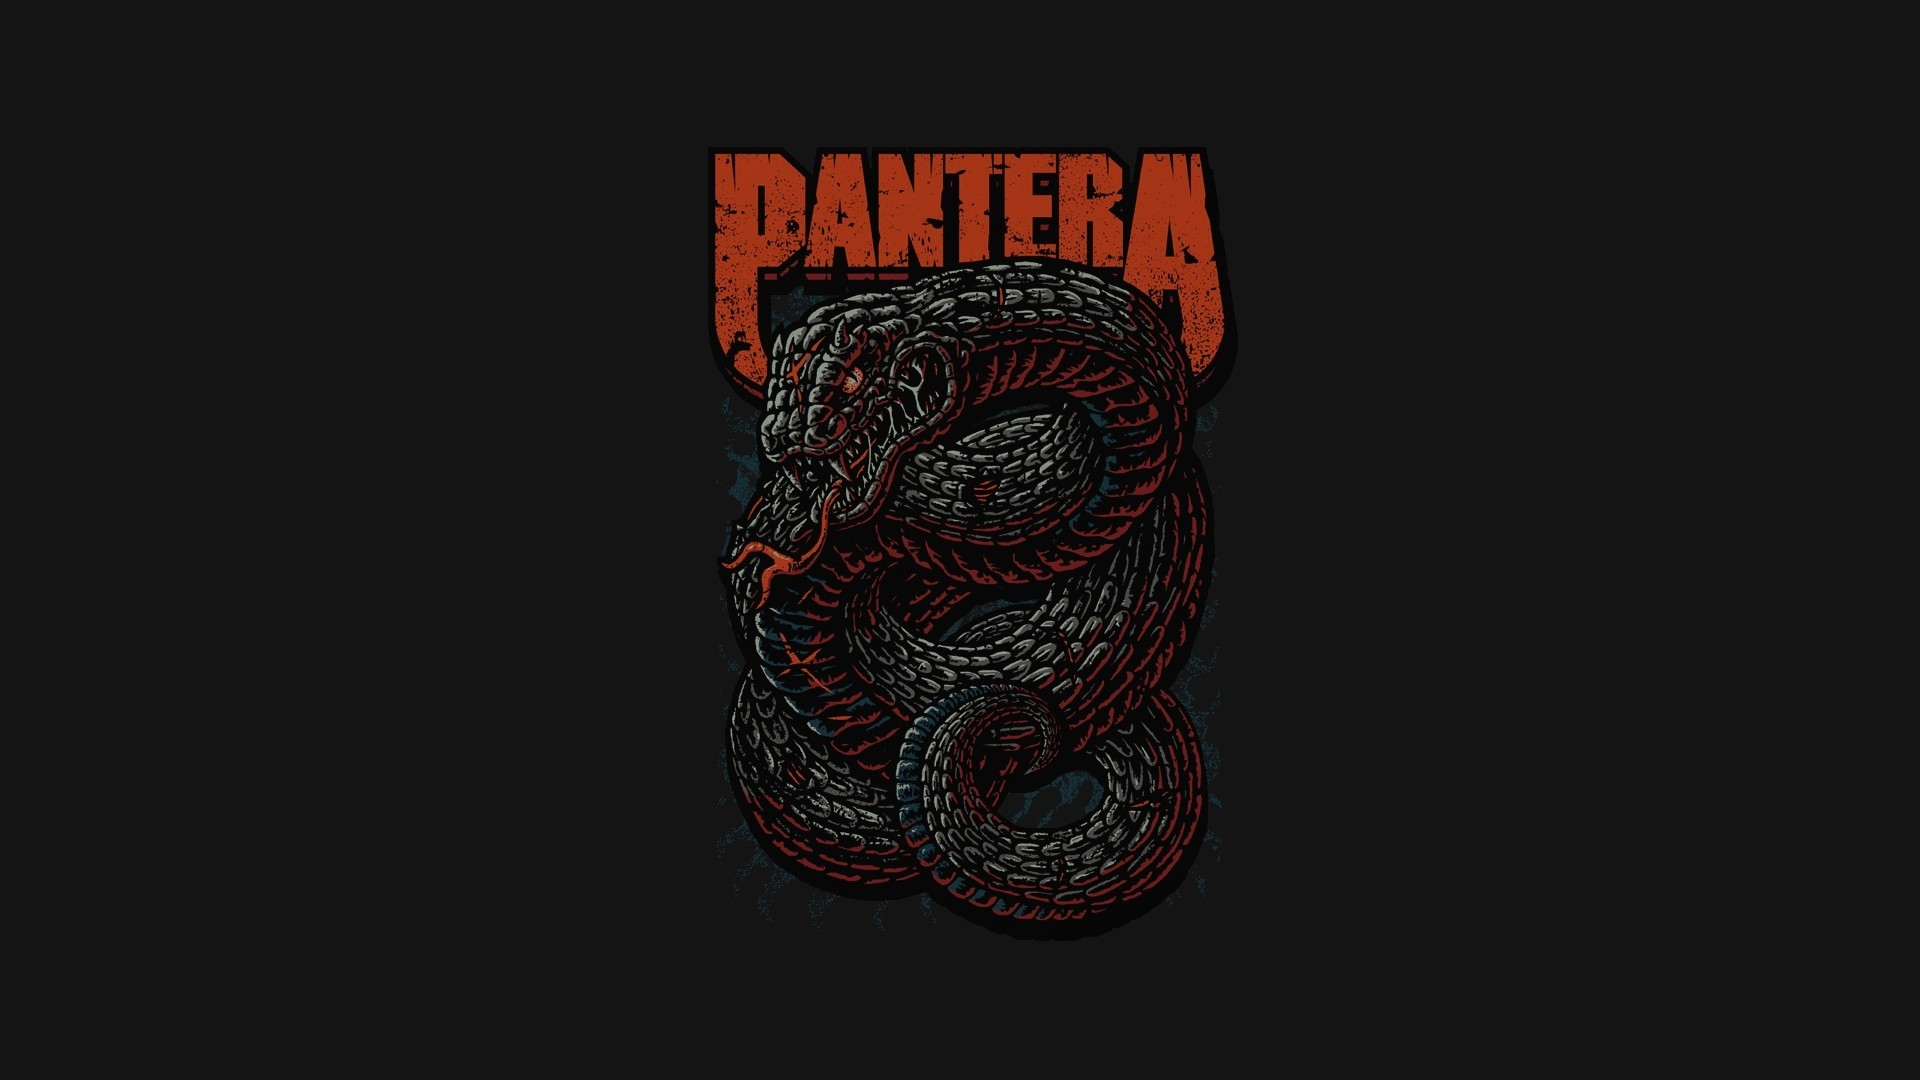 1920x1080  pantera music heavy metal thrash metal snake wallpaper and  background JPG 171 kB